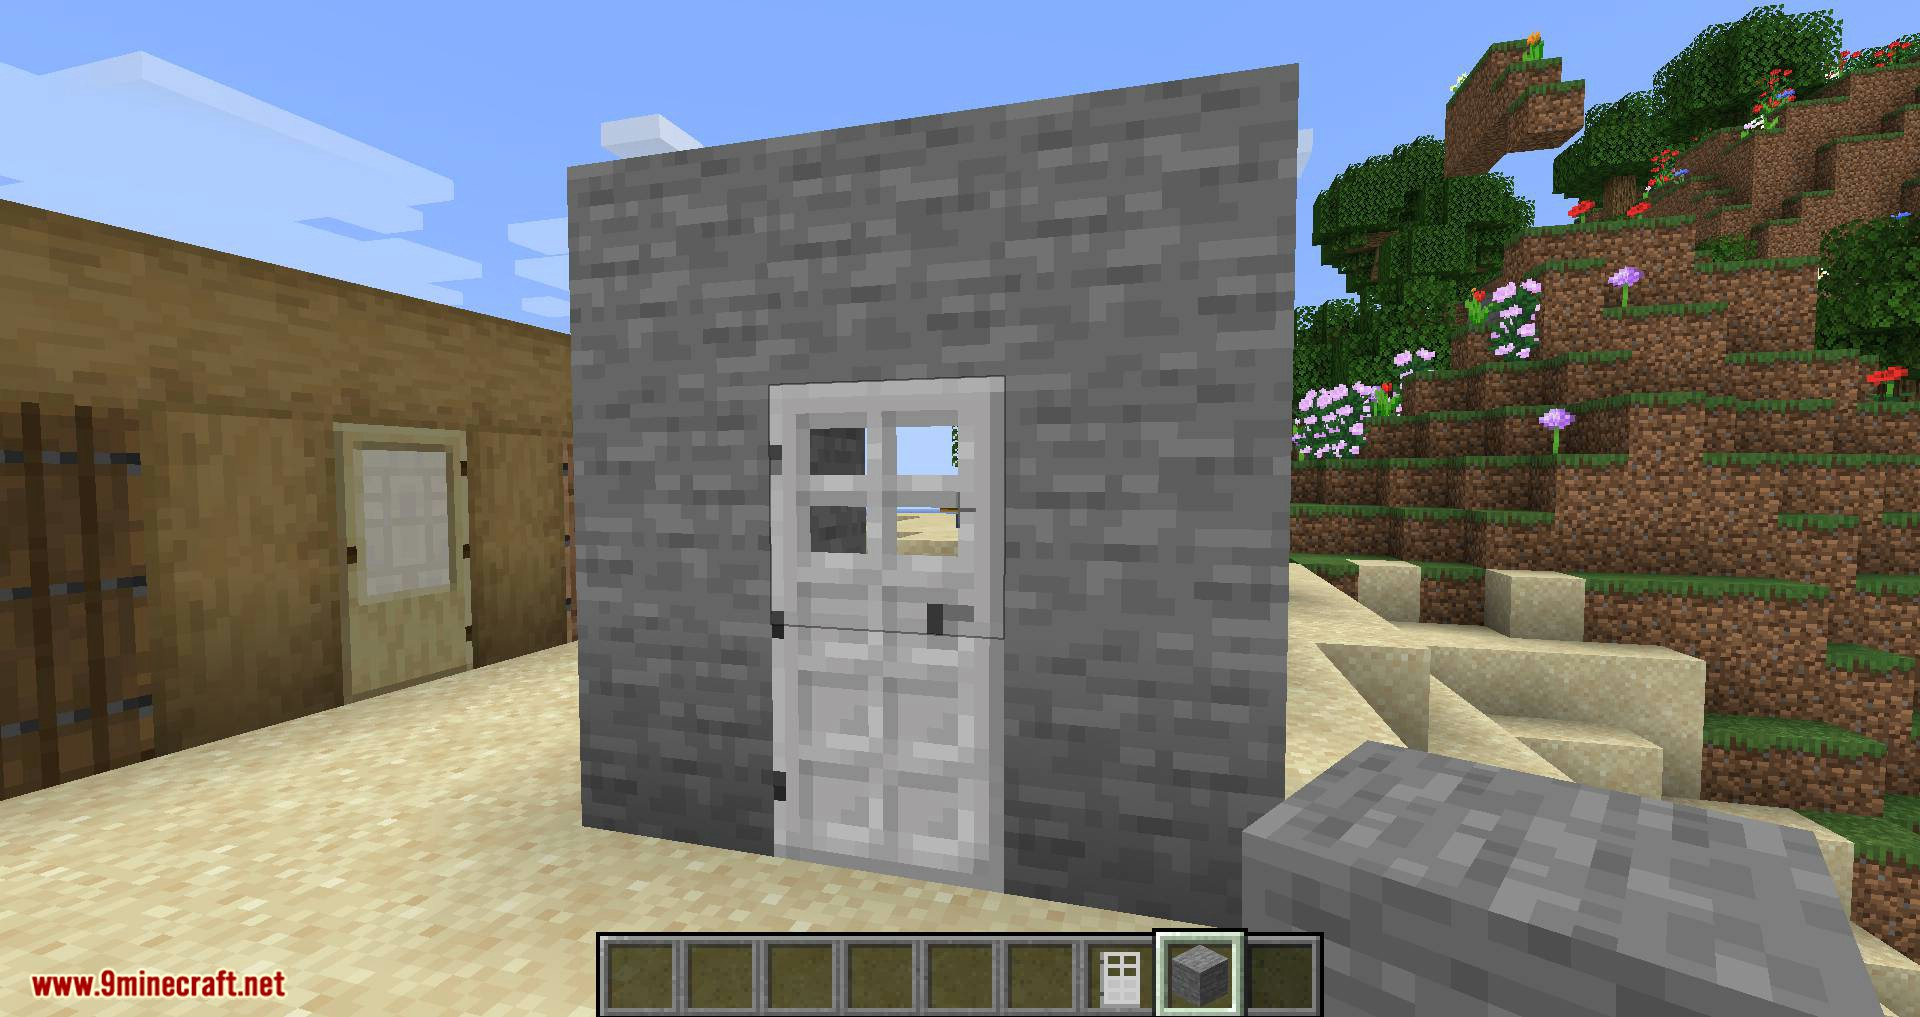 Automatic Door mod for minecraft 08